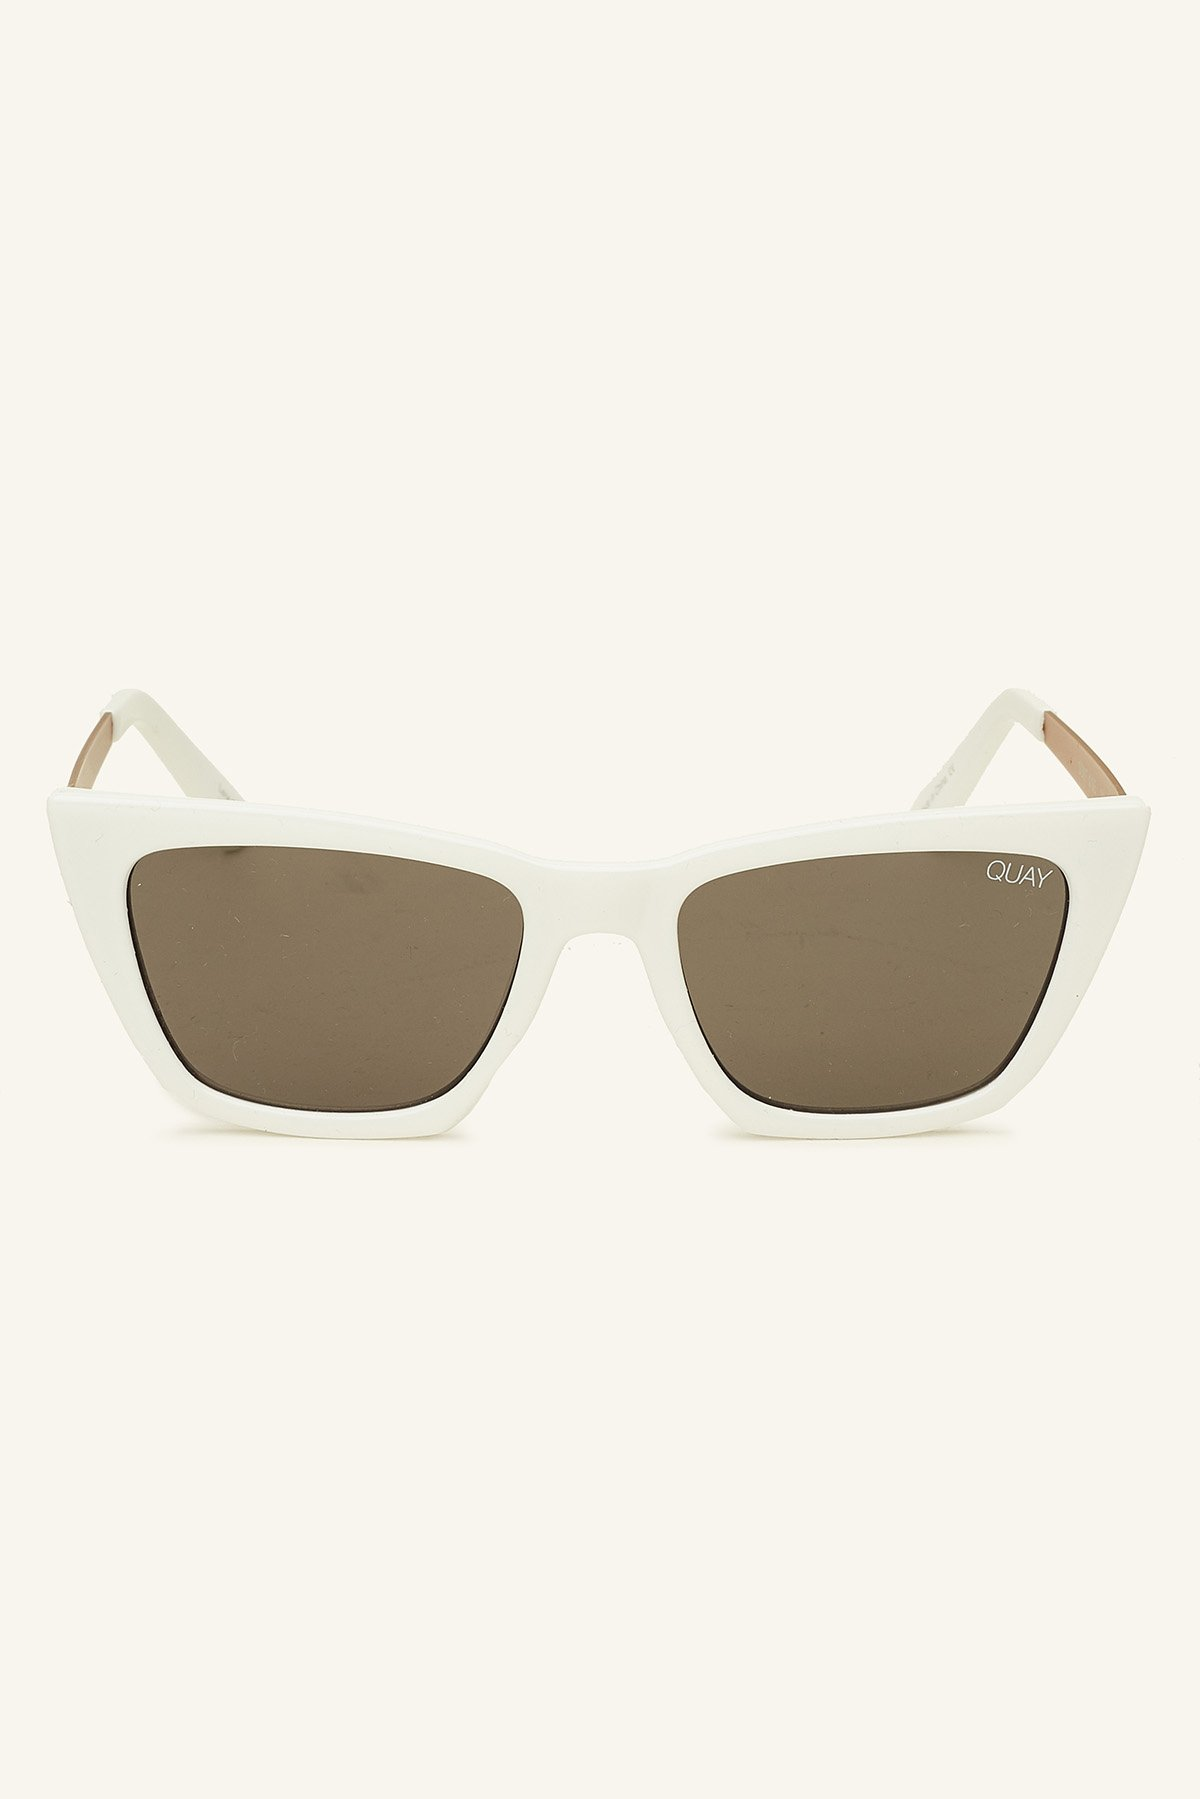 QUAY AUSTRALIA Women's #QUAYXDESI Don't @ Me White/Smoke One Size